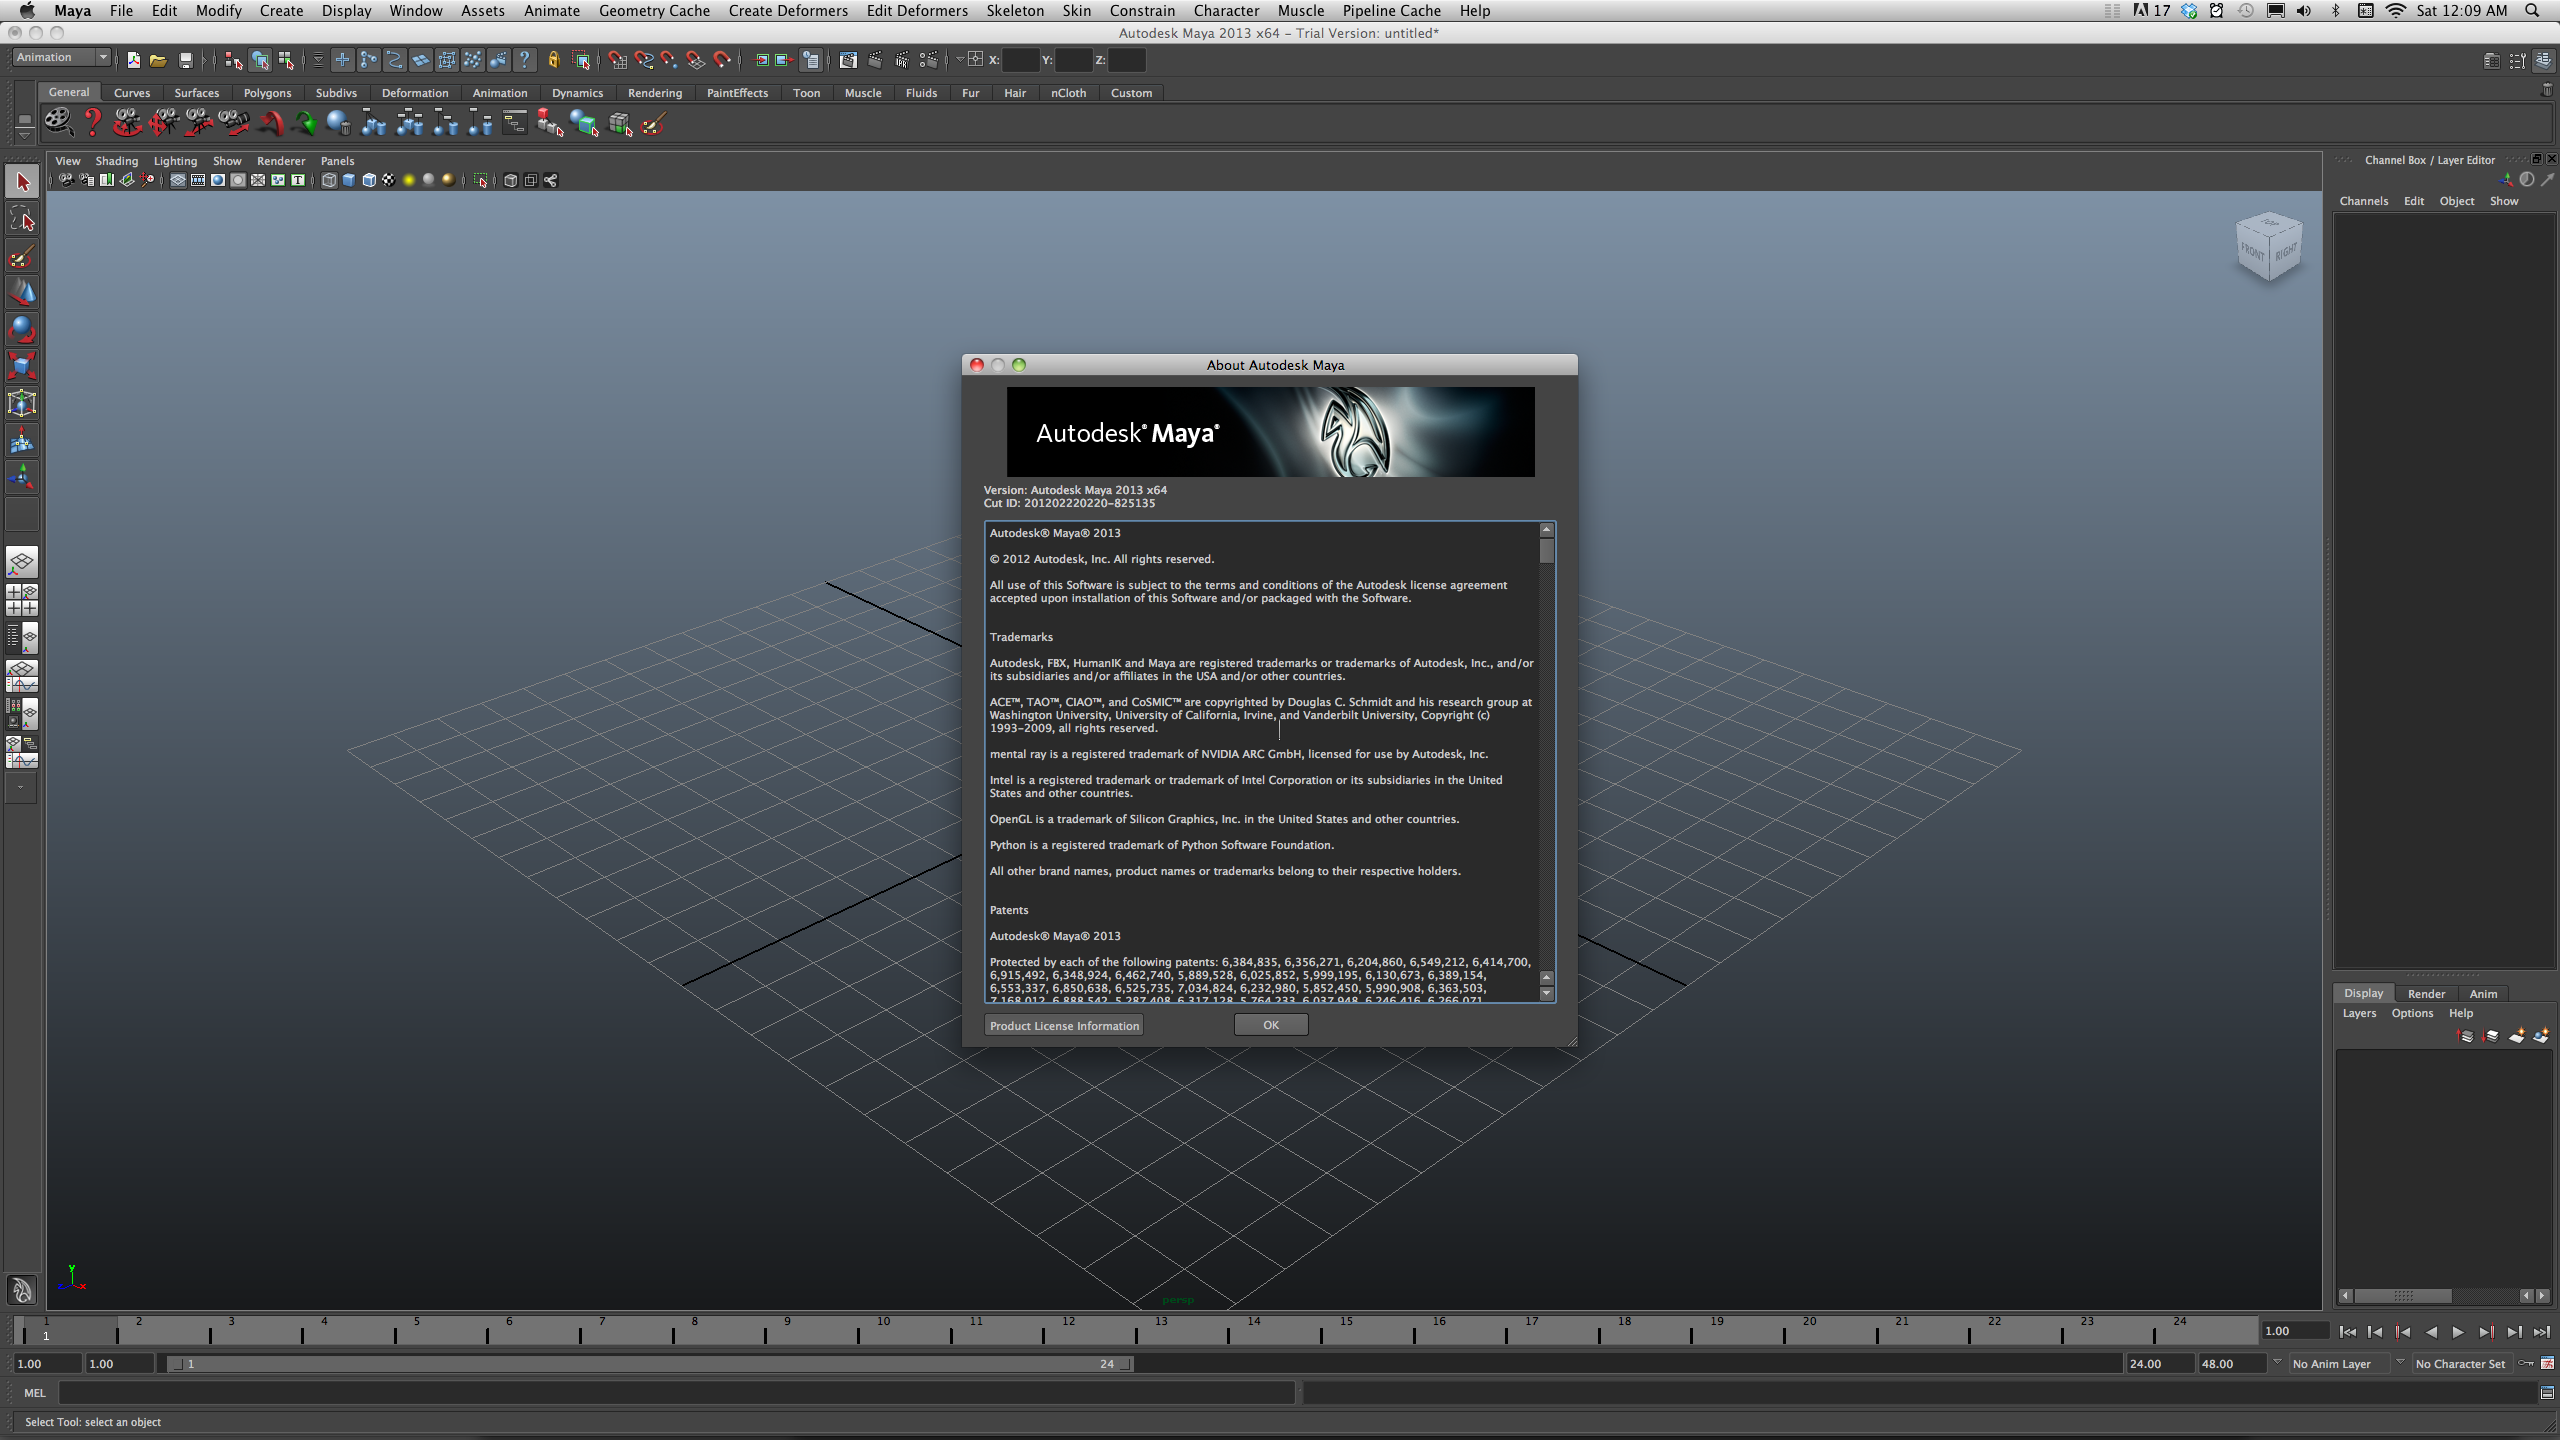 activation code for autodesk maya 2012